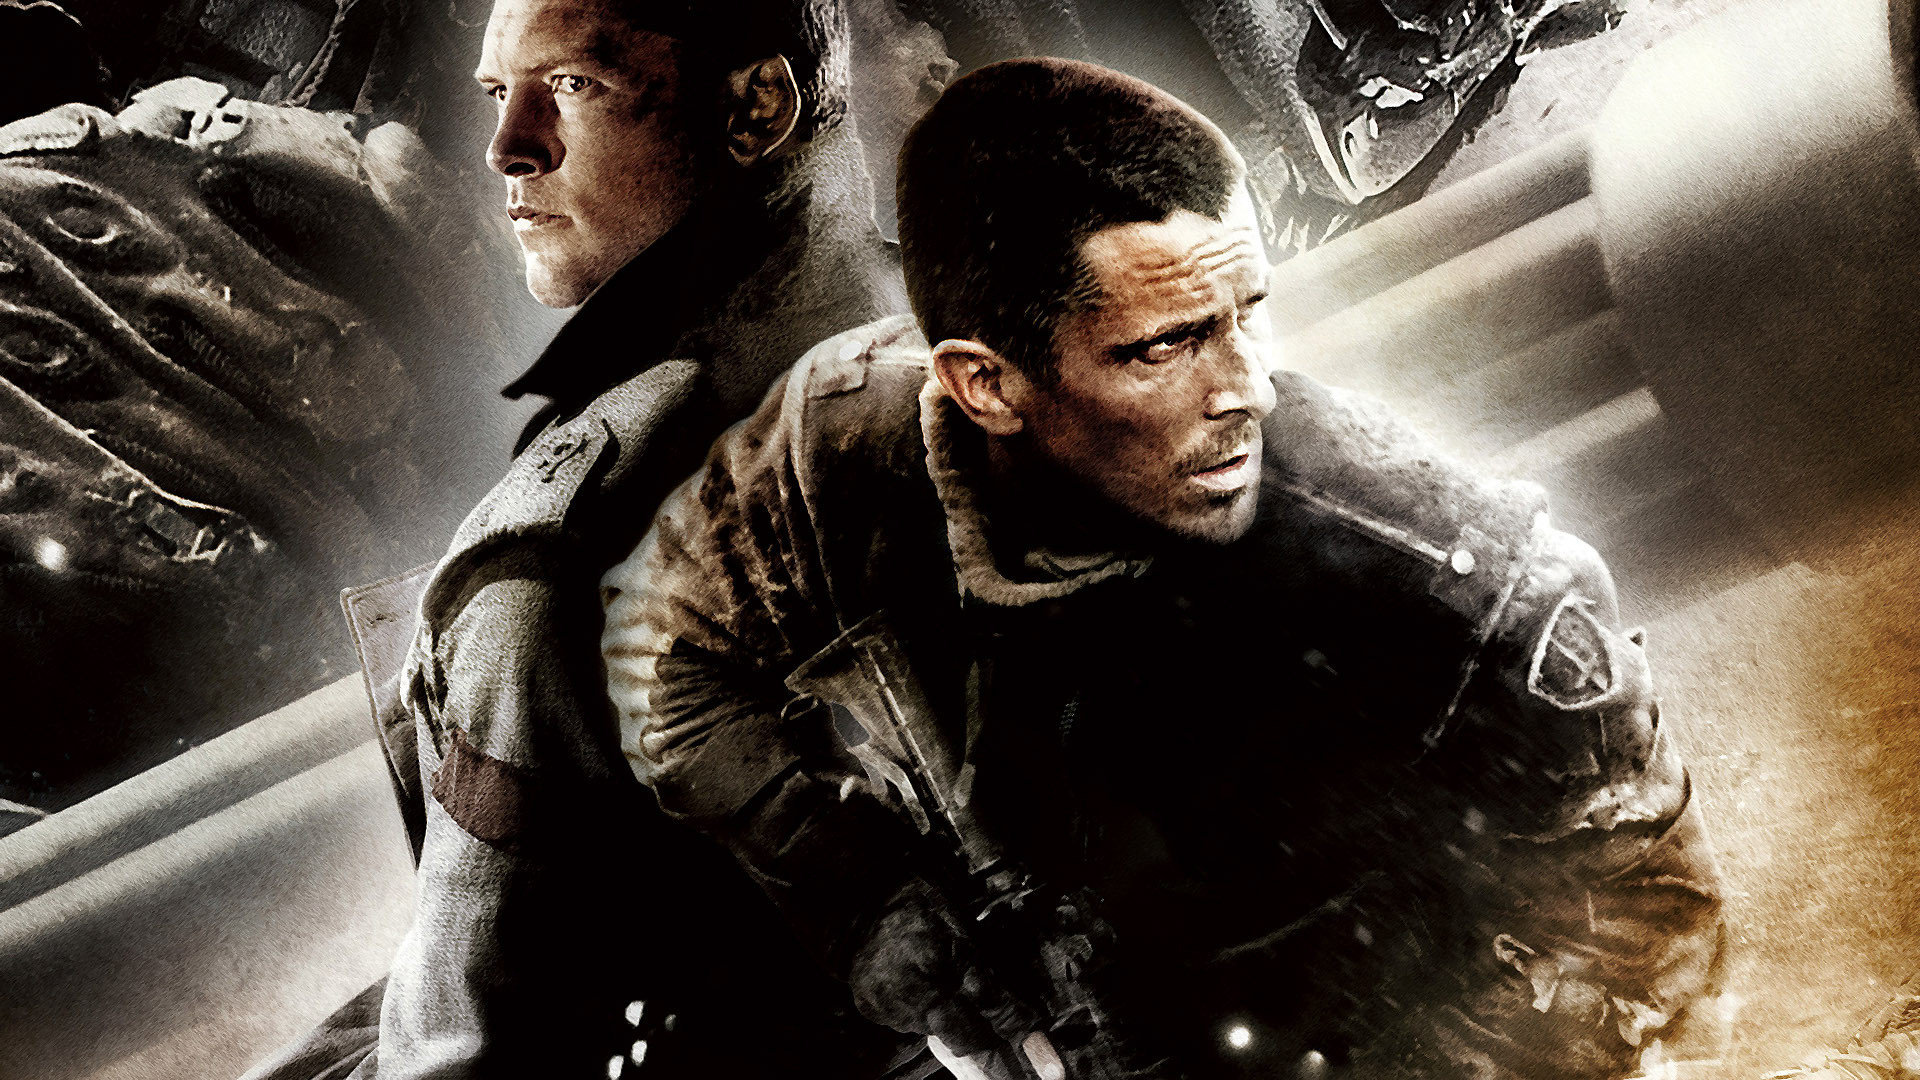 terminator salvation background wallpaper Download salvation wallpaper hd free for iphone android desktop tablet or mobile salvation wallpapers terminator salvation 137406 142.